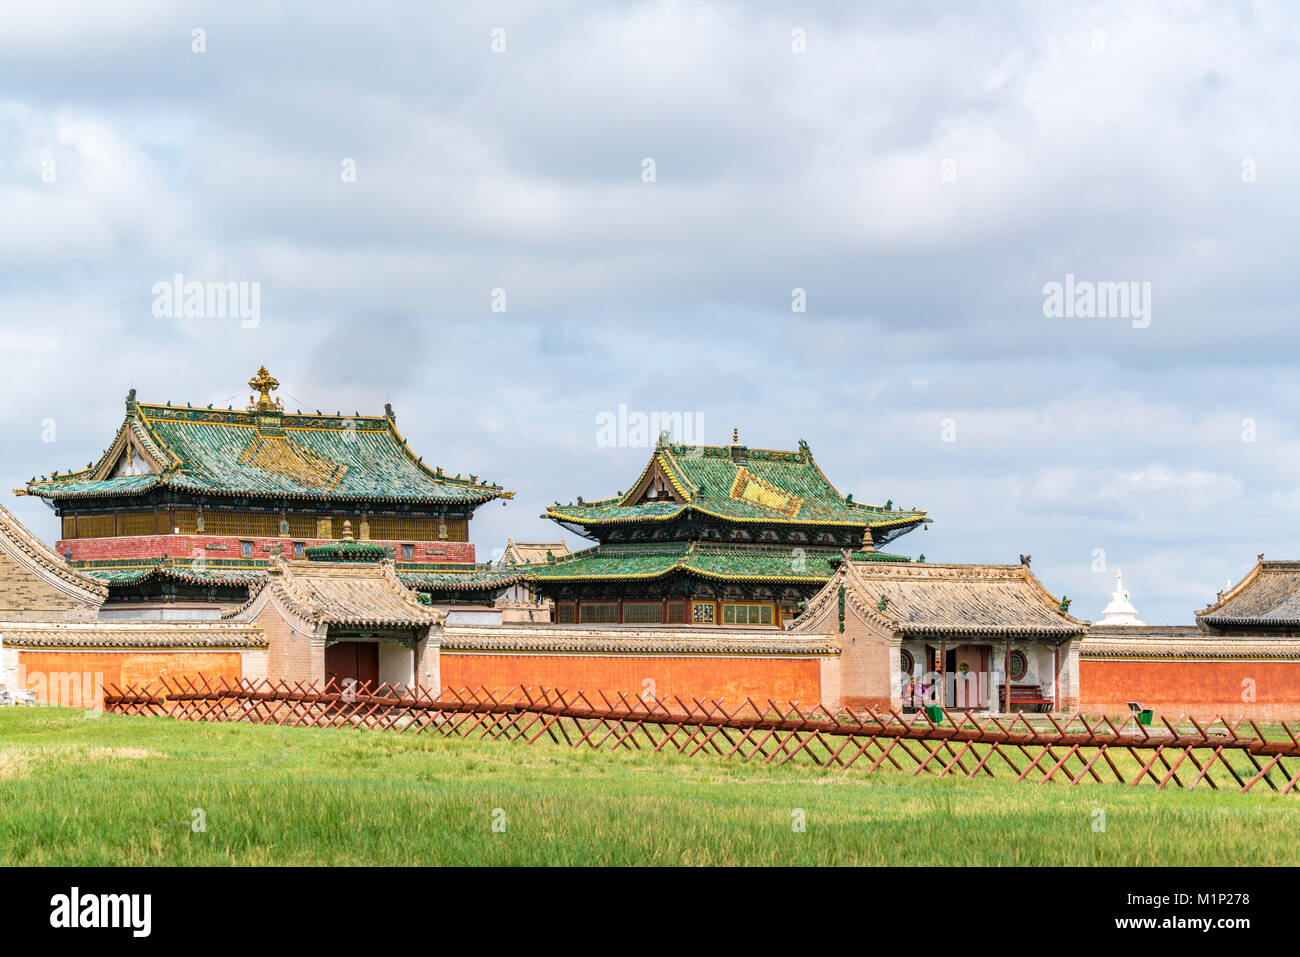 Temples in Erdene Zuu Monastery, Harhorin, South Hangay province, Mongolia, Central Asia, Asia Stock Photo